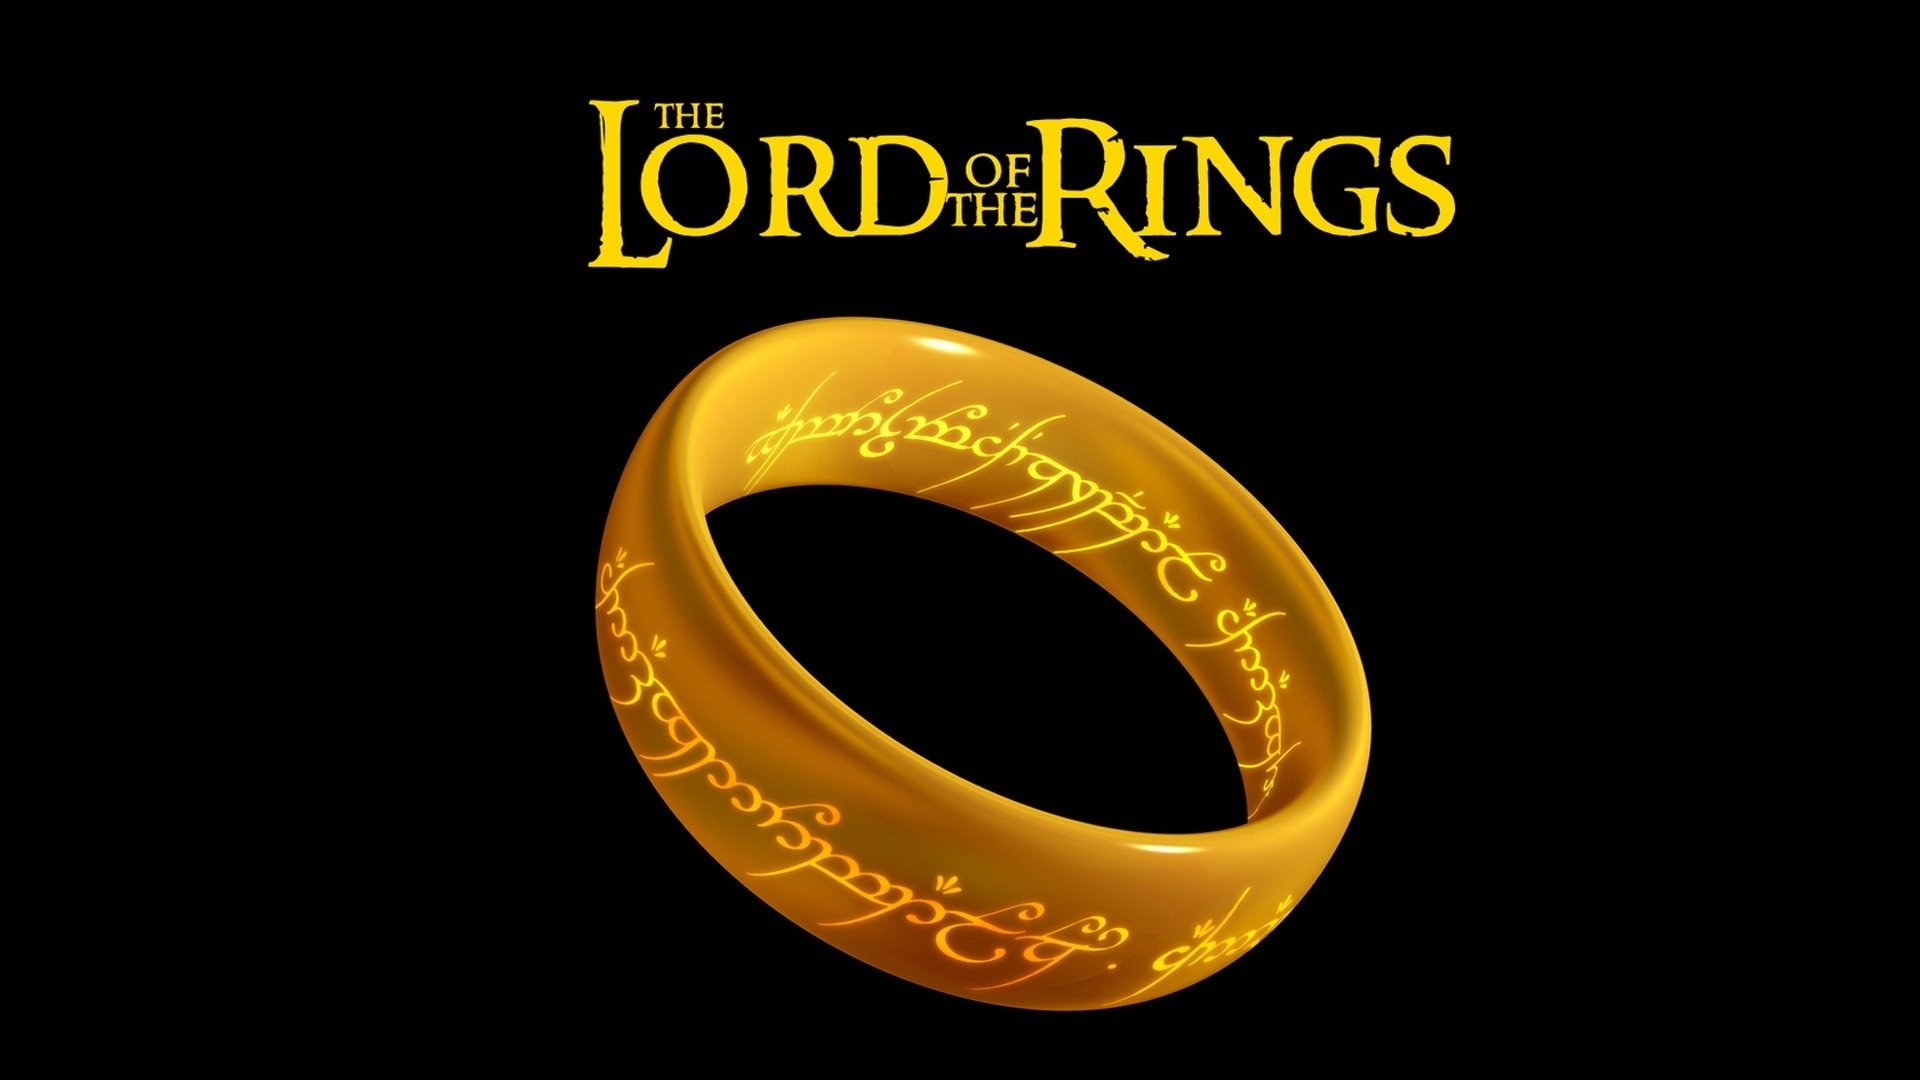 The Lord of the Rings 1080p HD Wallpaper Movies HD Wallpapers Source 1920x1080